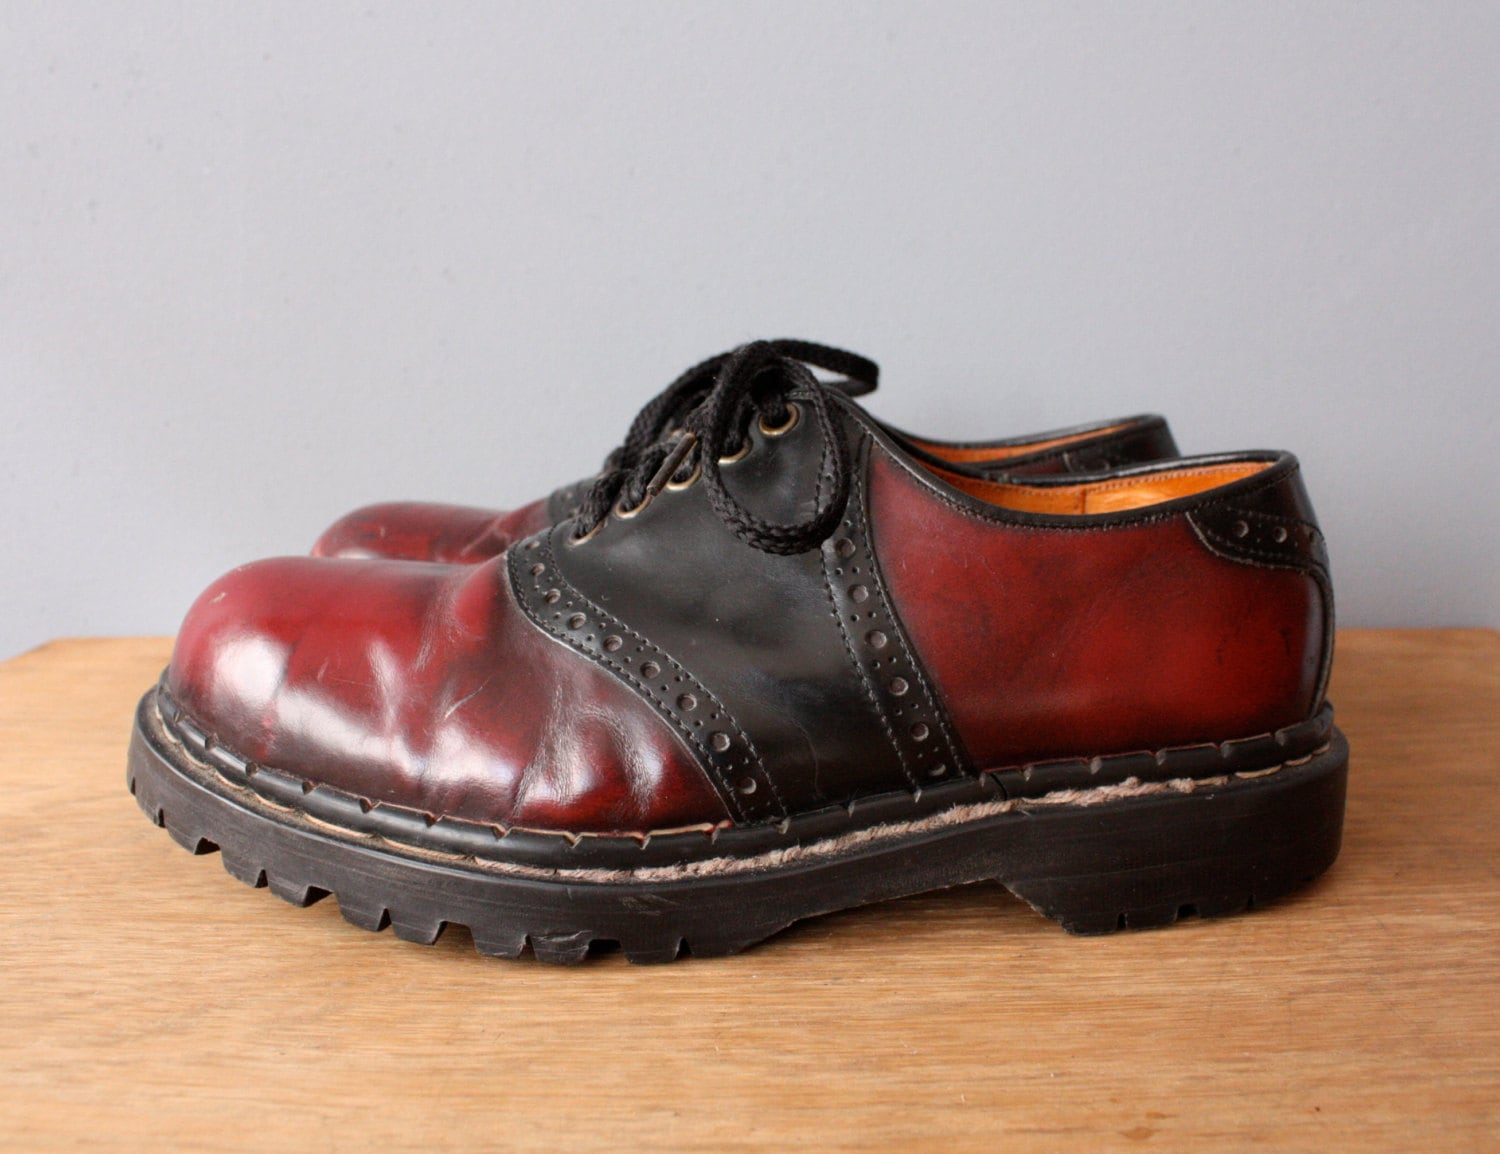 Oxblood Red Saddle Shoes  S